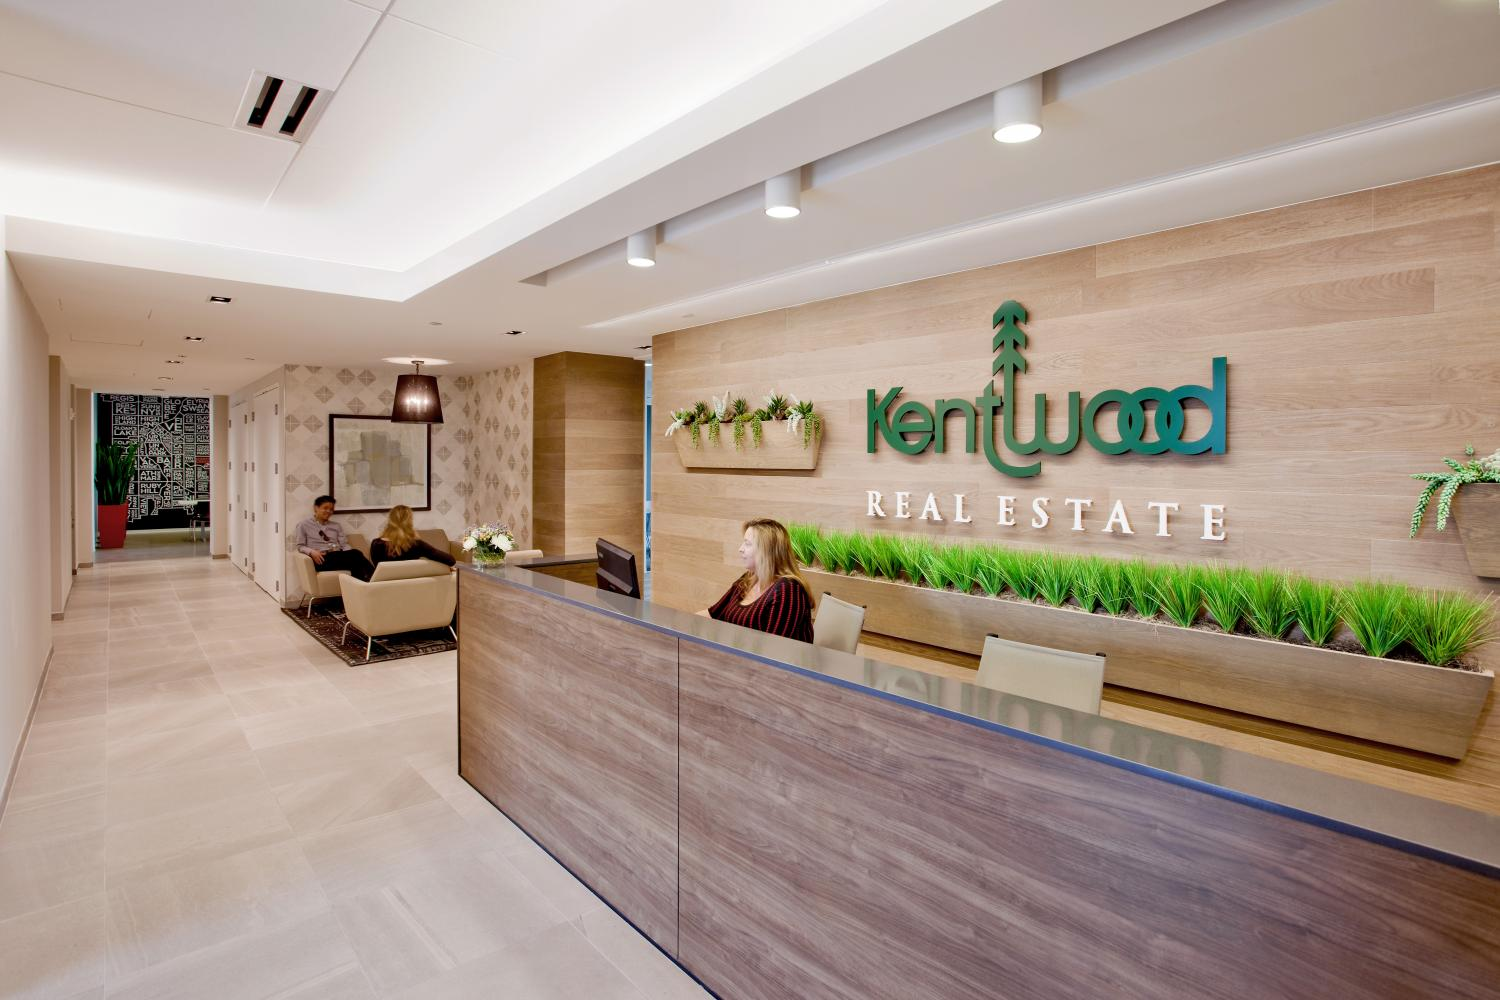 Kentwood Reception Desk Commercial Construction Denver Colorado